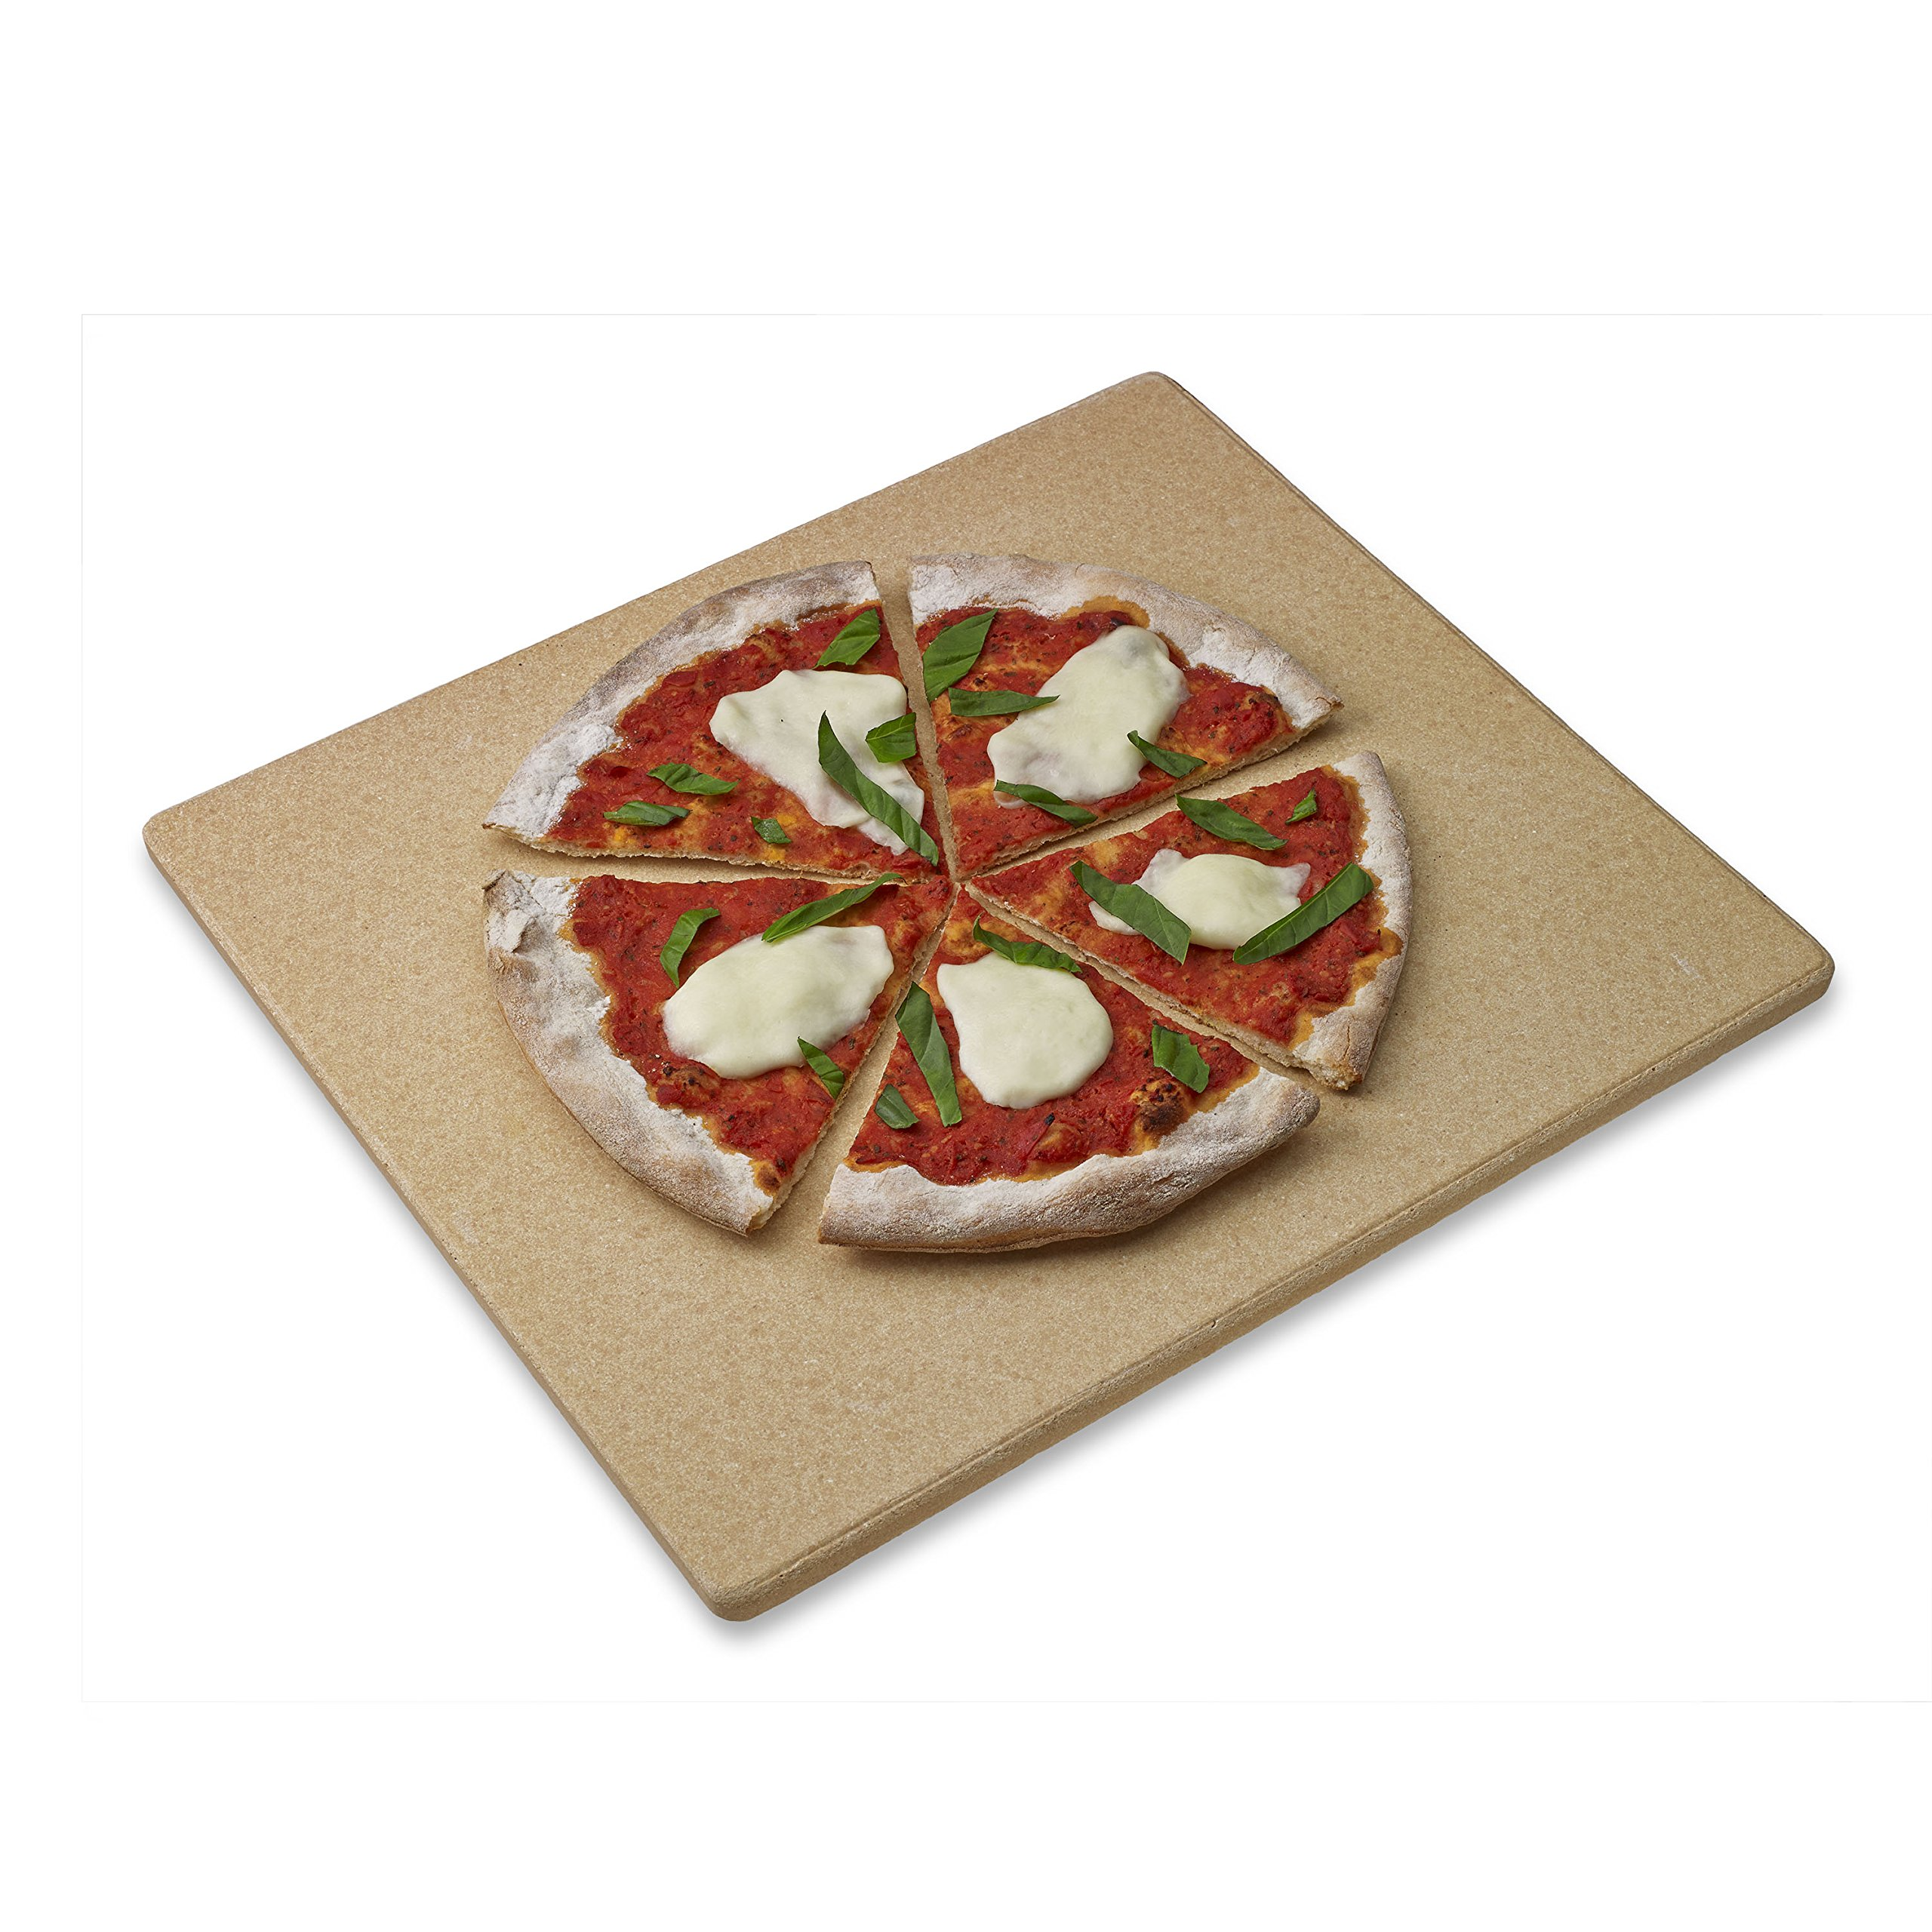 Old Stone Oven Rectangular Pizza Stone by Honey-Can-Do (Image #1)